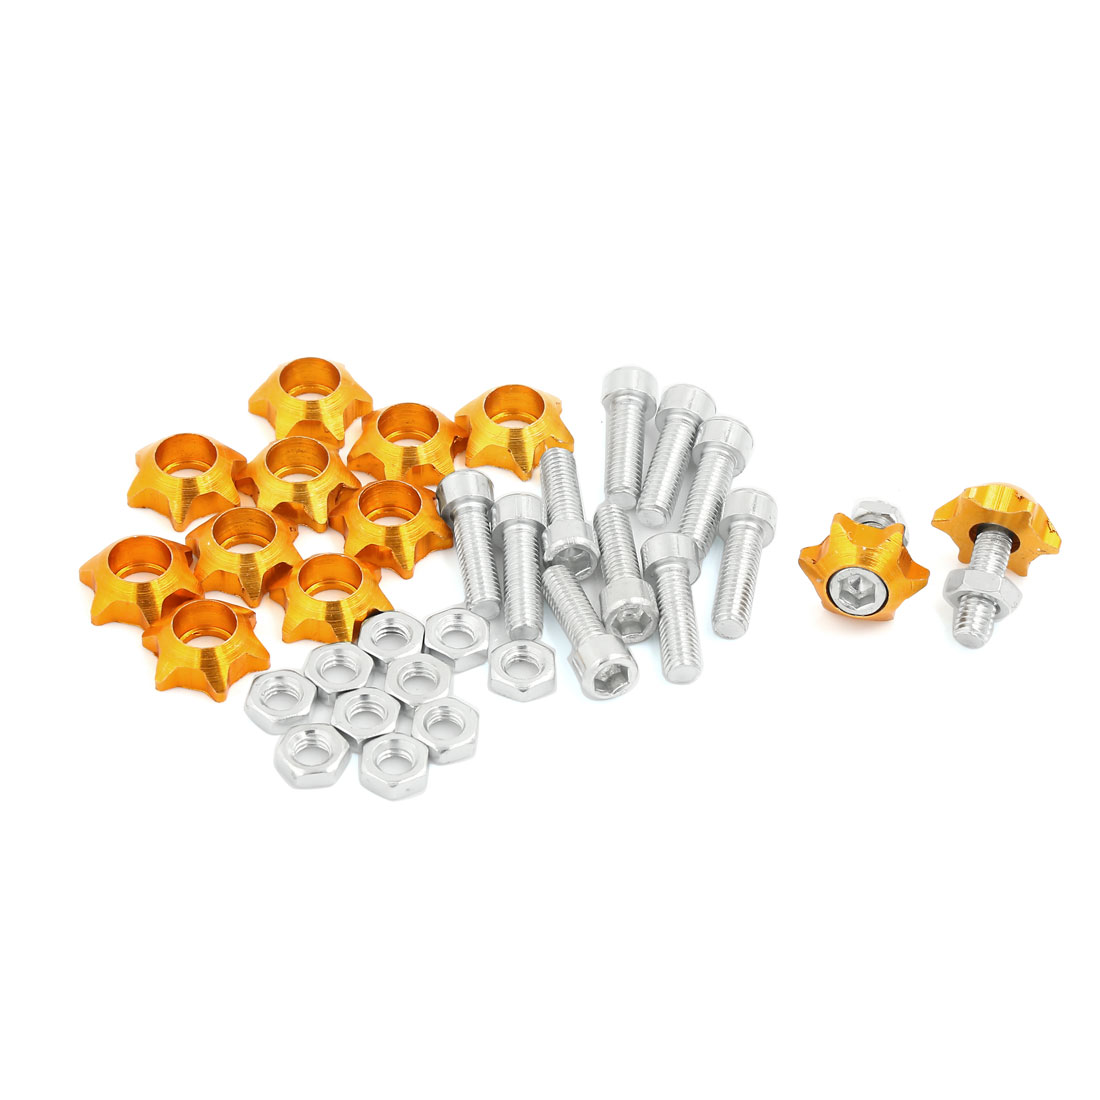 12 Pcs Yellow Metal Star Shaped Bolts Screw Decor for Car License Number Plate